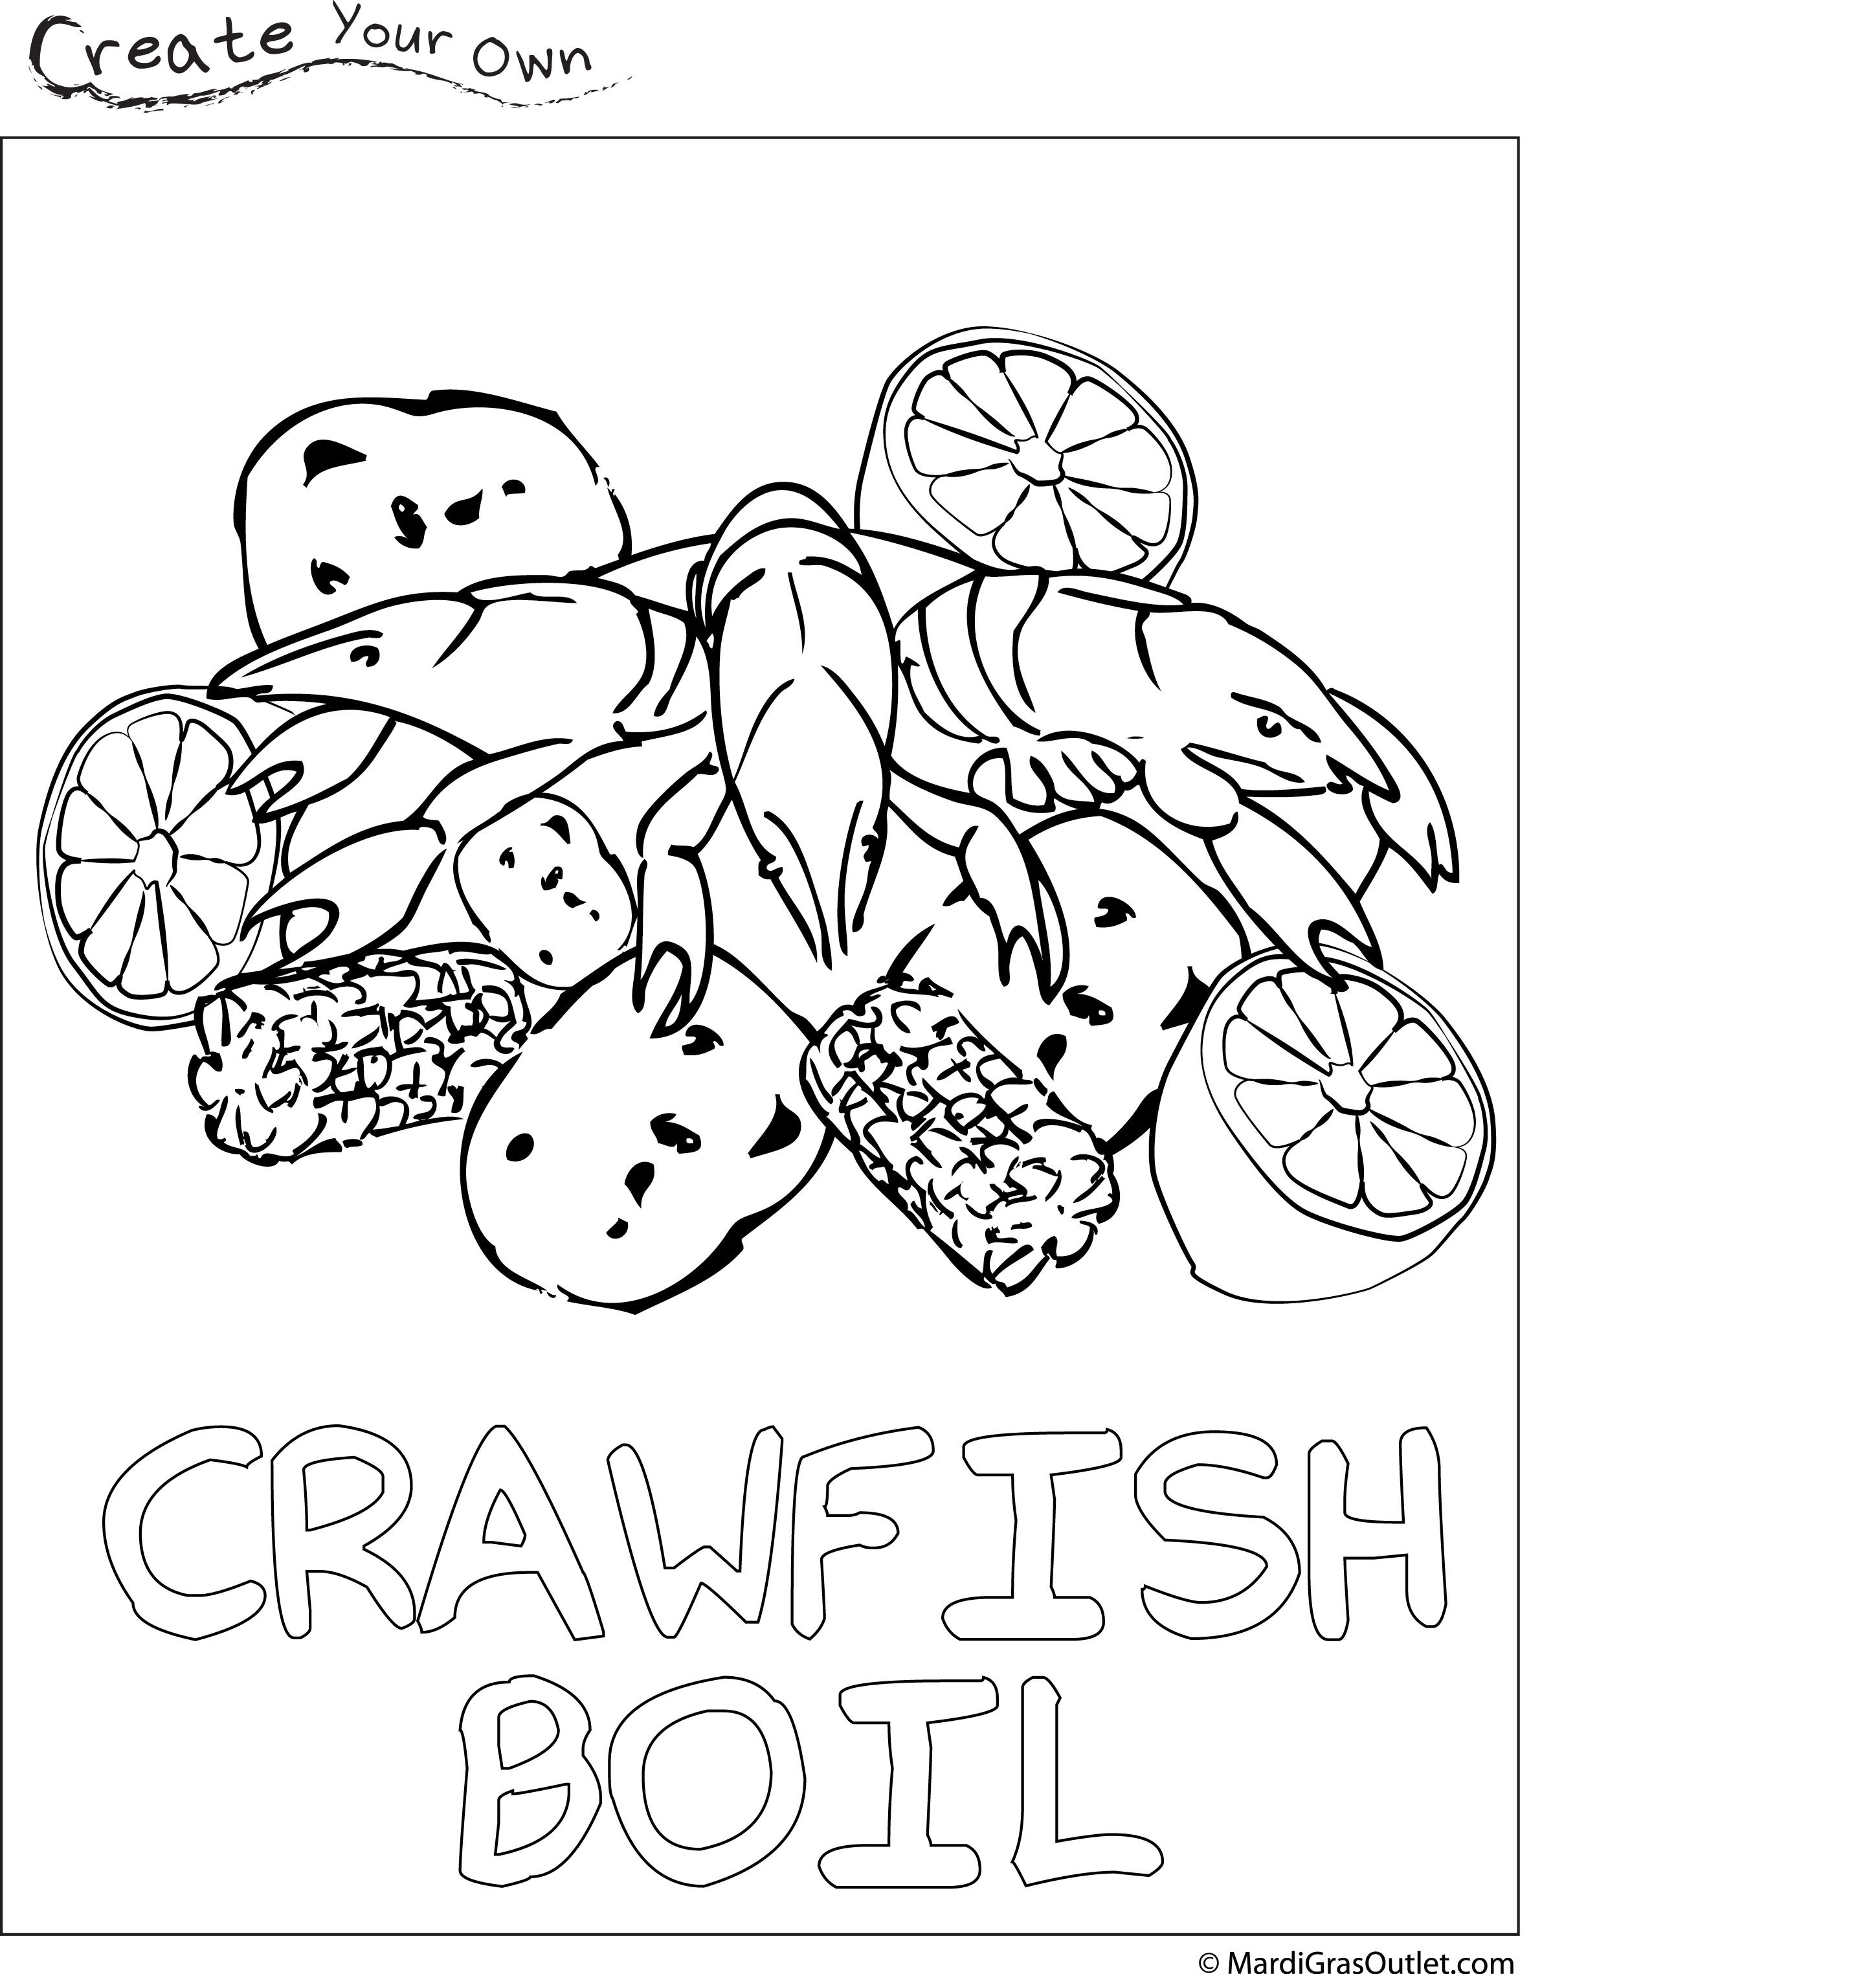 Crawfish Boil Coloring Page Free Download Gives The Kids